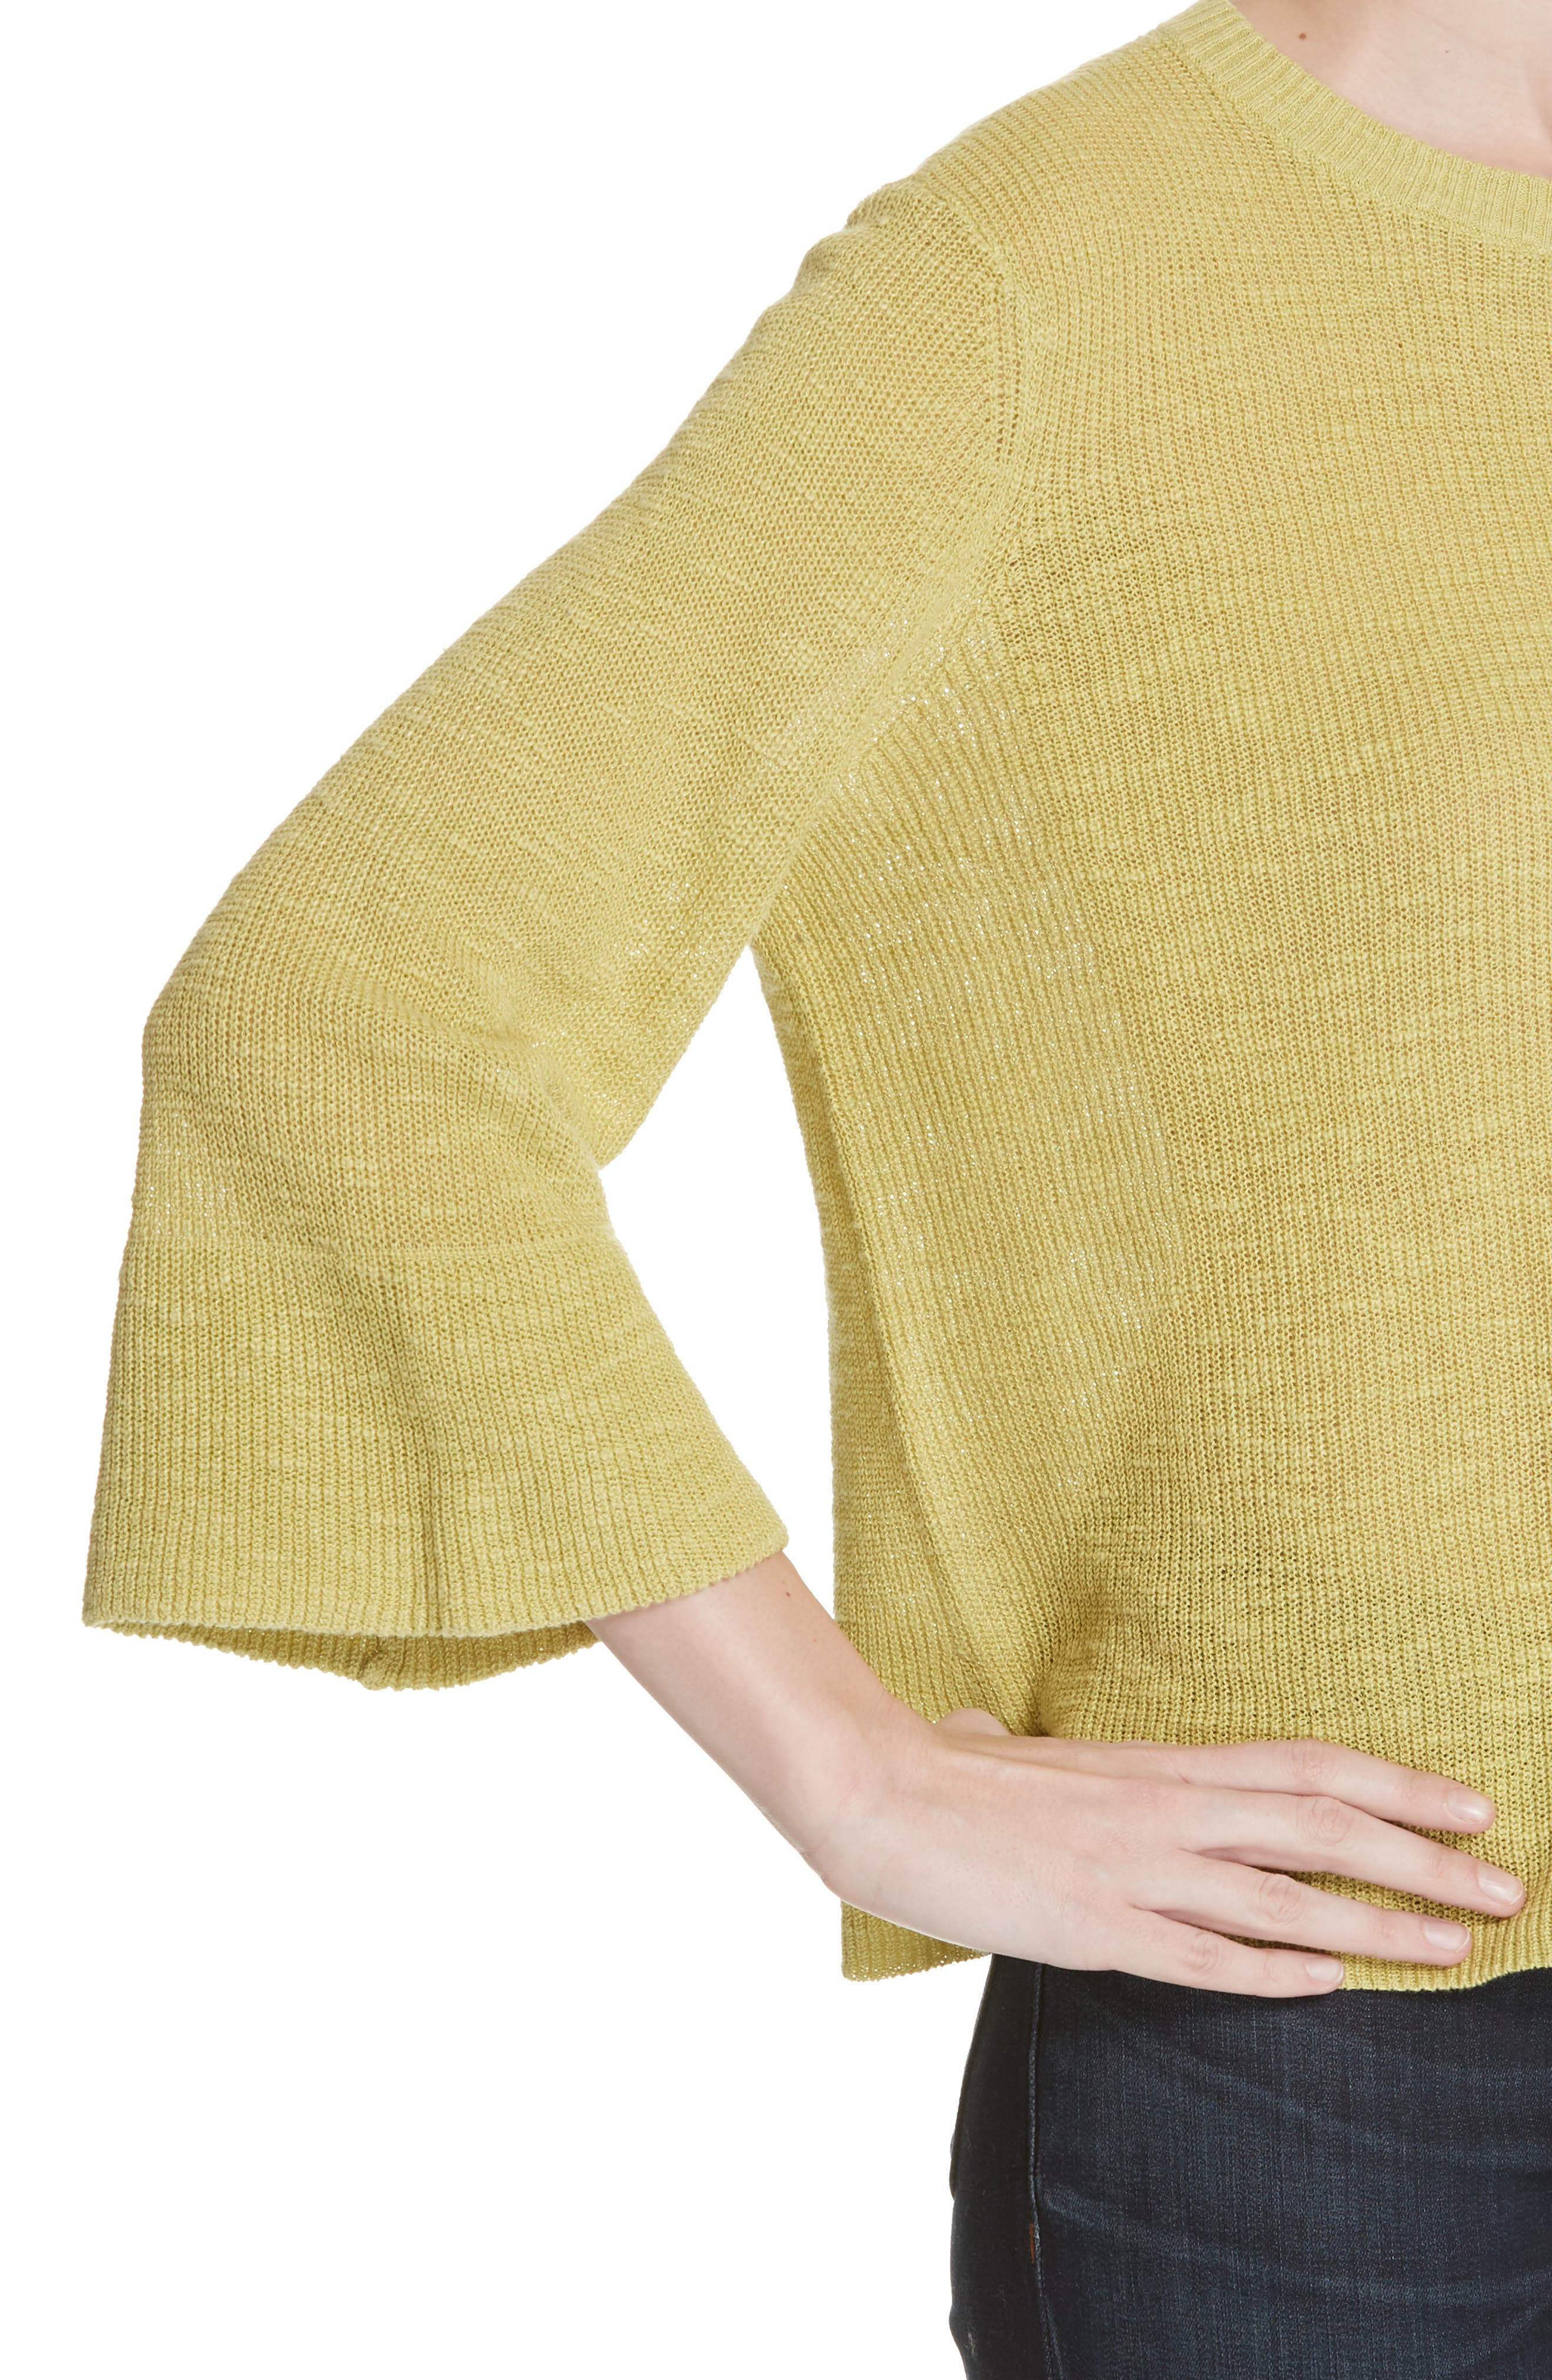 Linen & Cotton Sweater,                             Alternate thumbnail 4, color,                             VERBENA